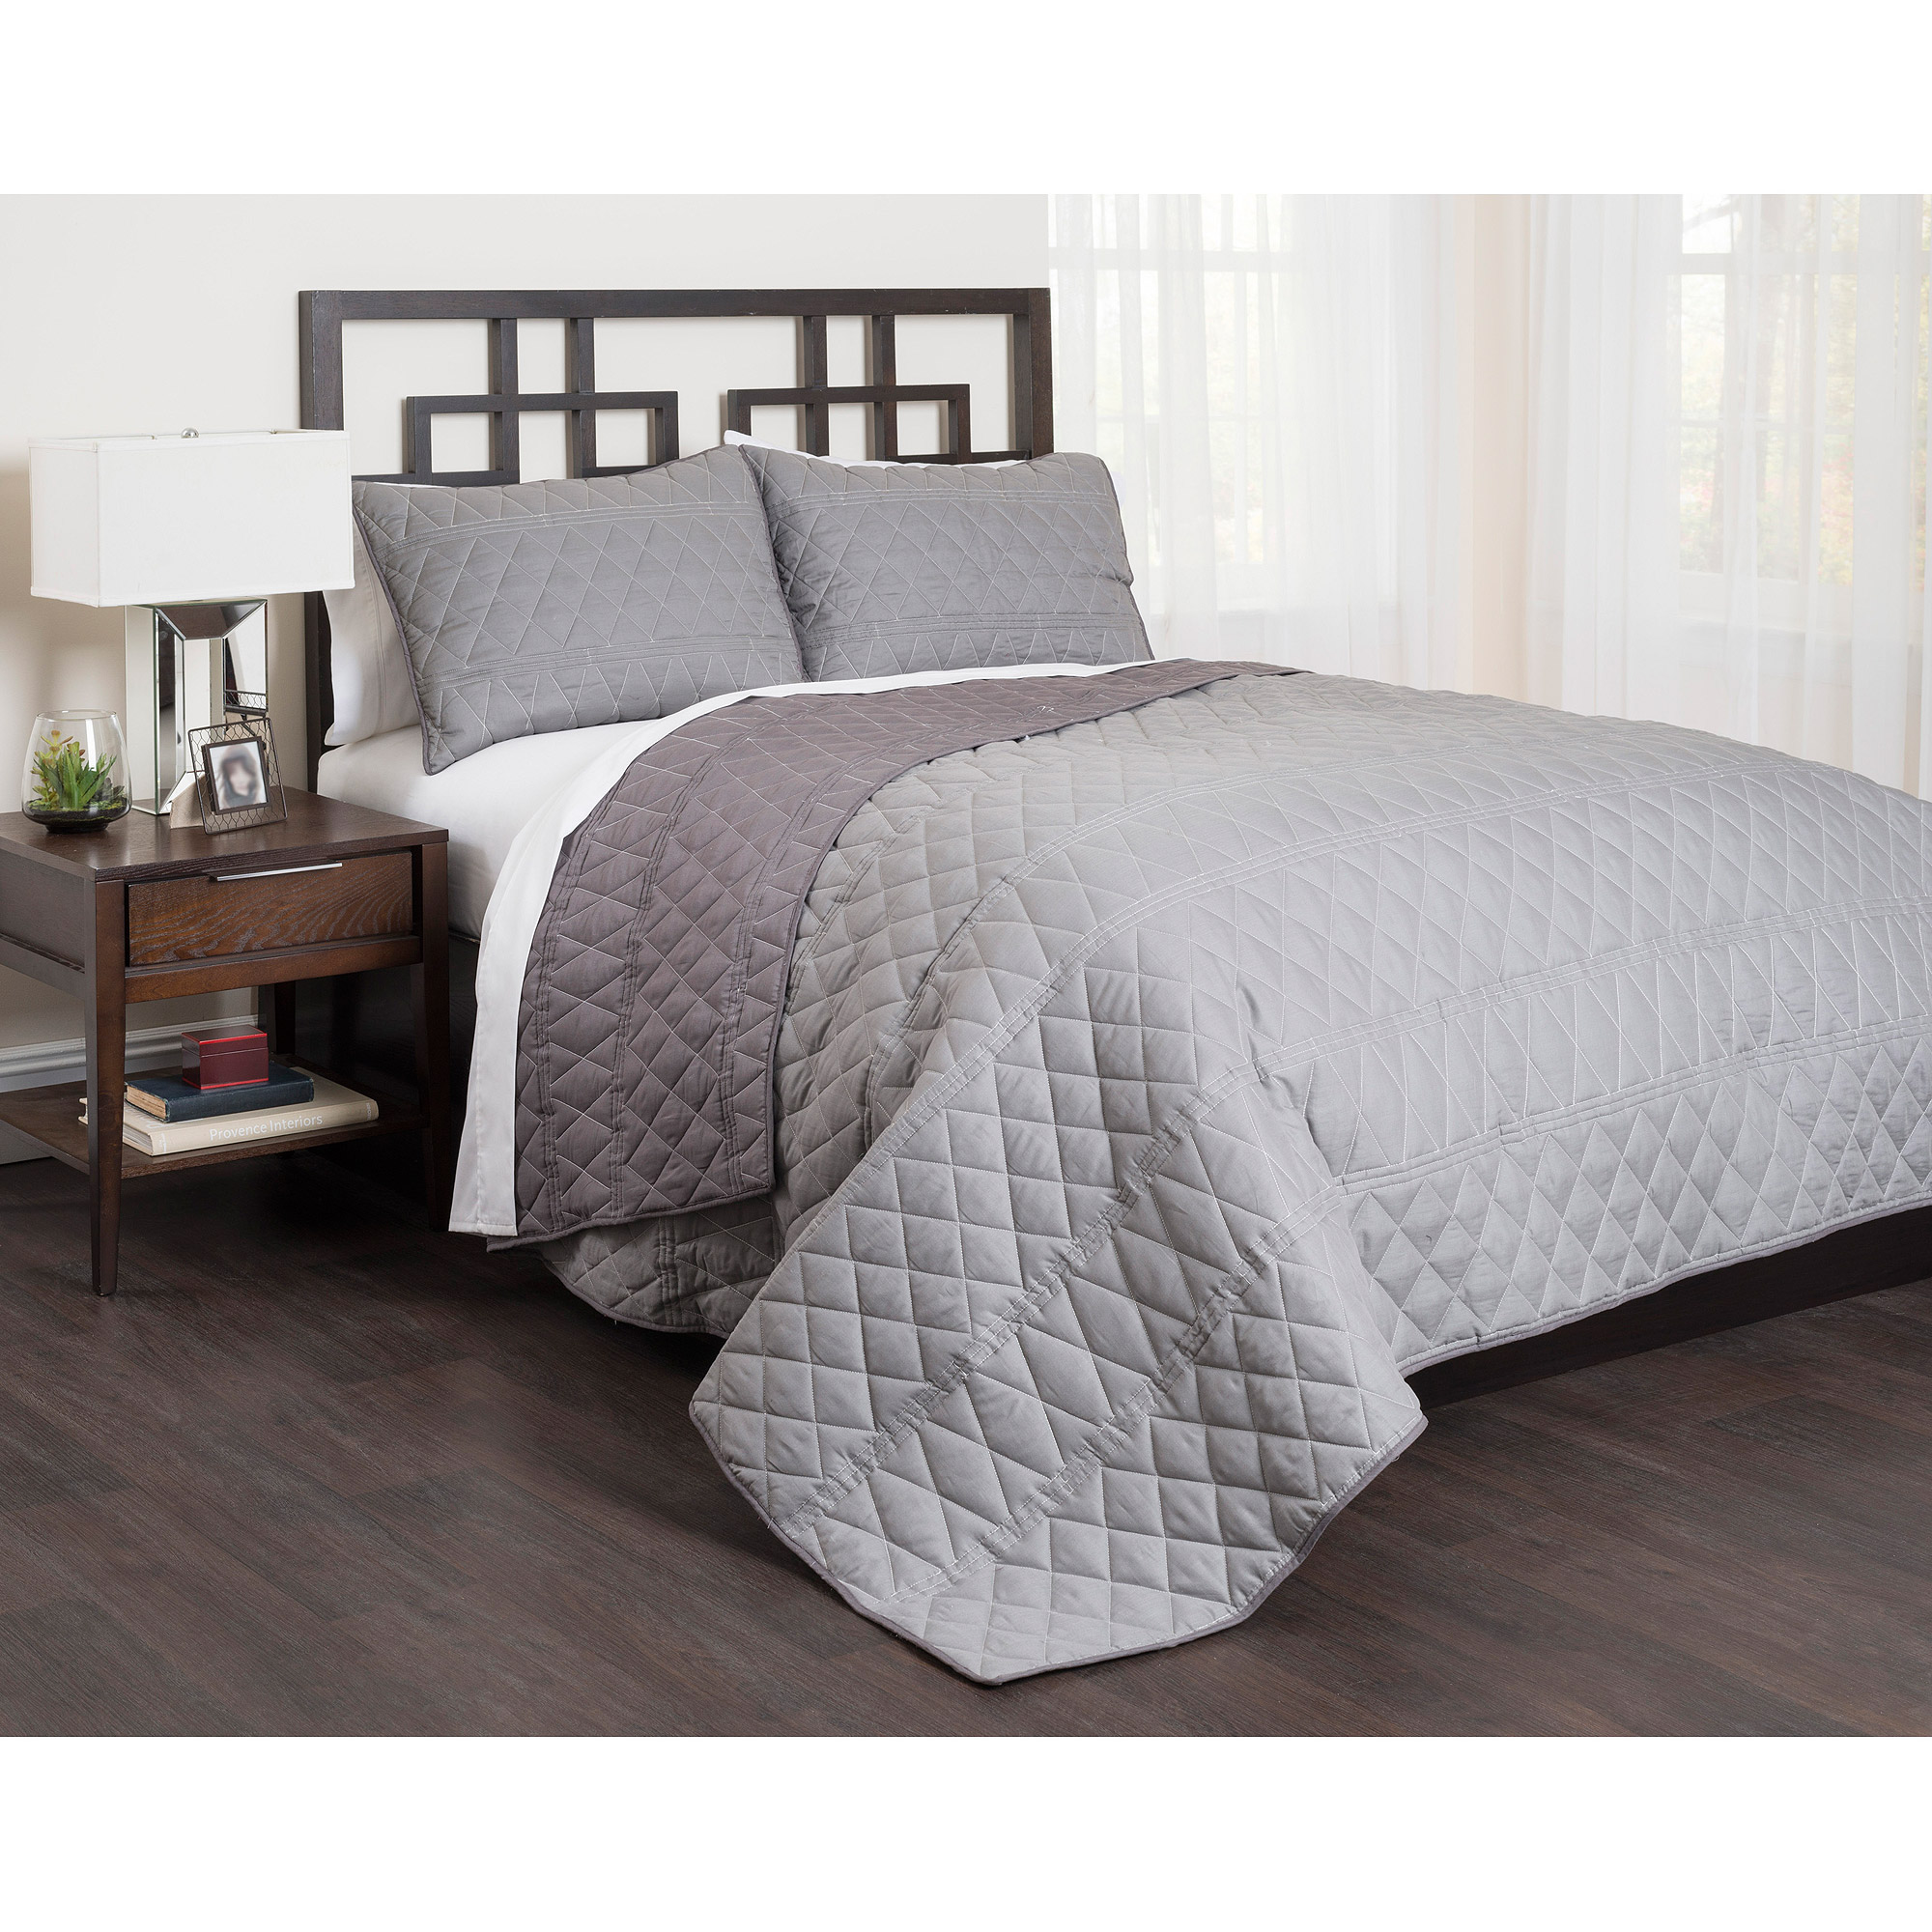 East End Living Geo Bedding Quilt Set, Gray by Idea Nuova